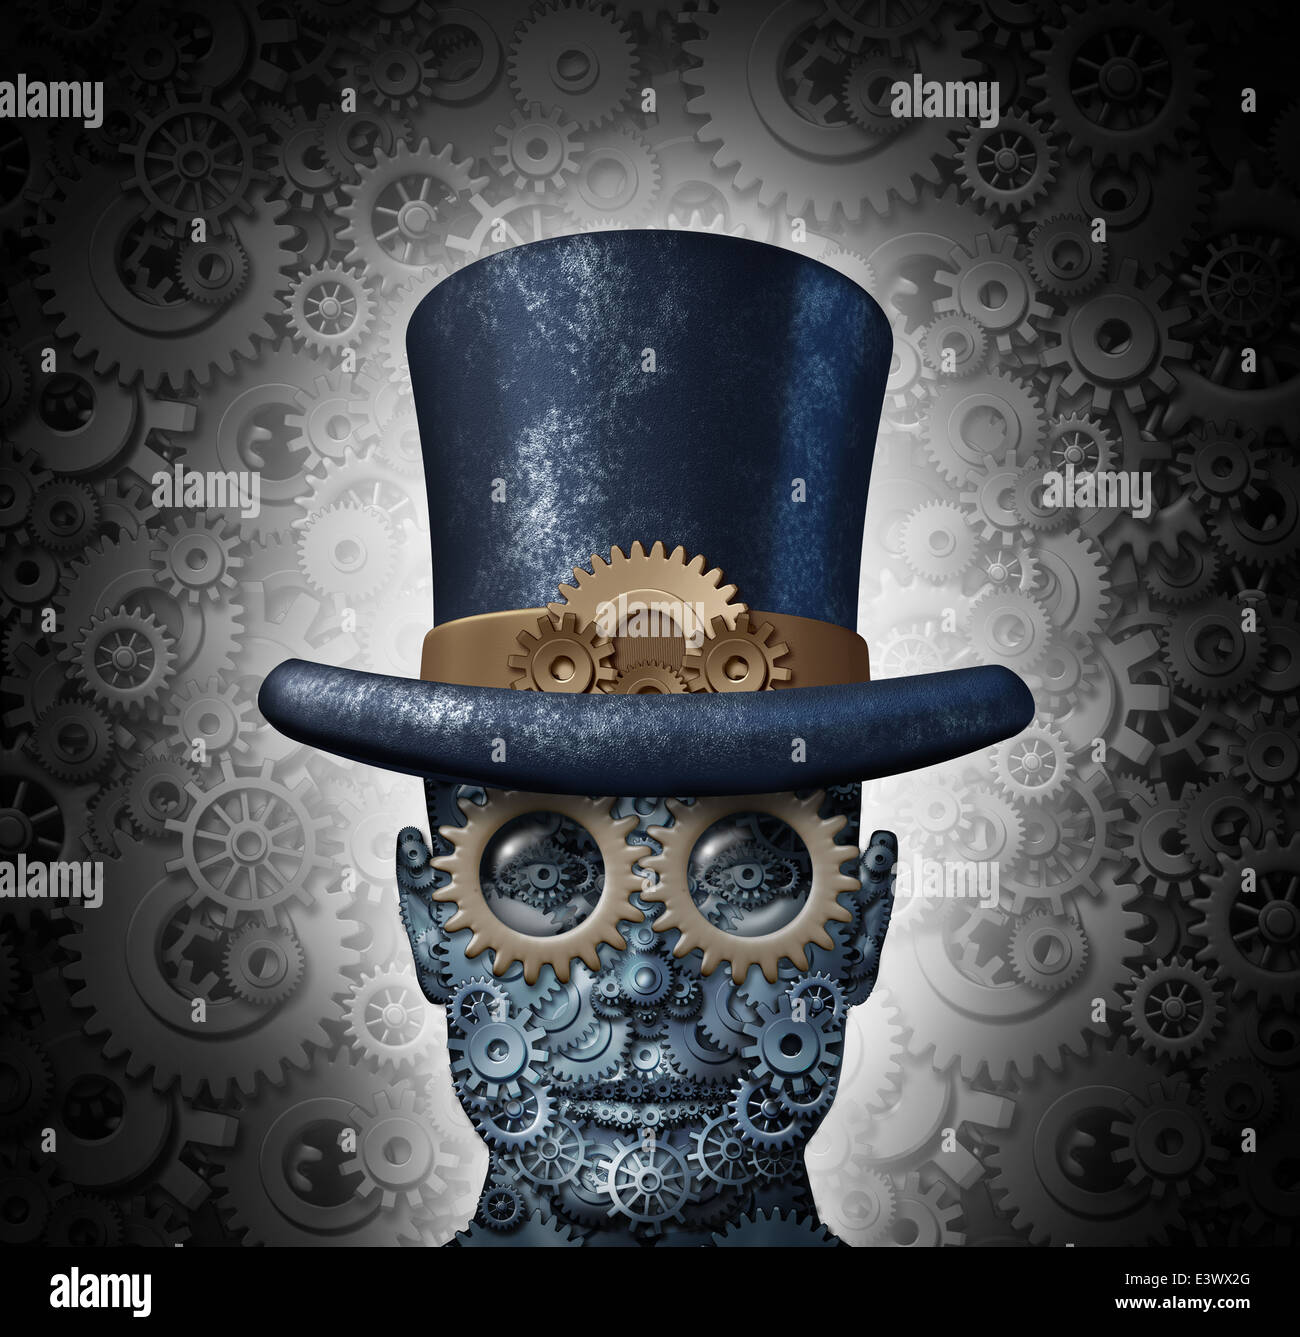 Steampunk science fiction concept as a fantasy mechanical human head made of gears and cogs wearing a historical - Stock Image